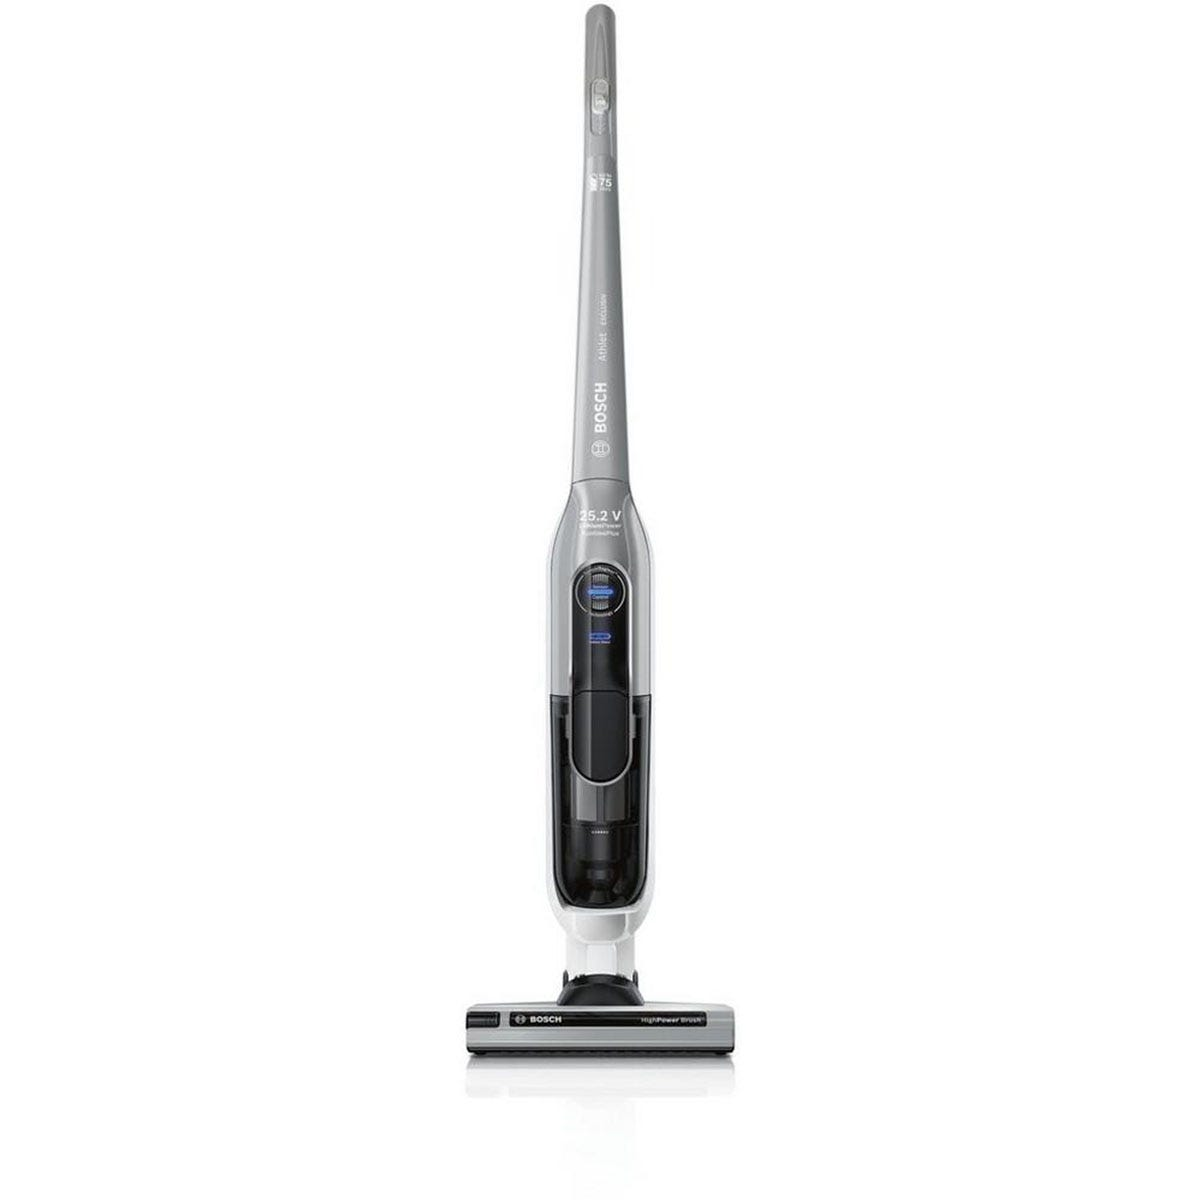 Bosch Athlet BBH625M1 Cordless Vacuum Cleaner, 75 Minutes Run Time - Silver